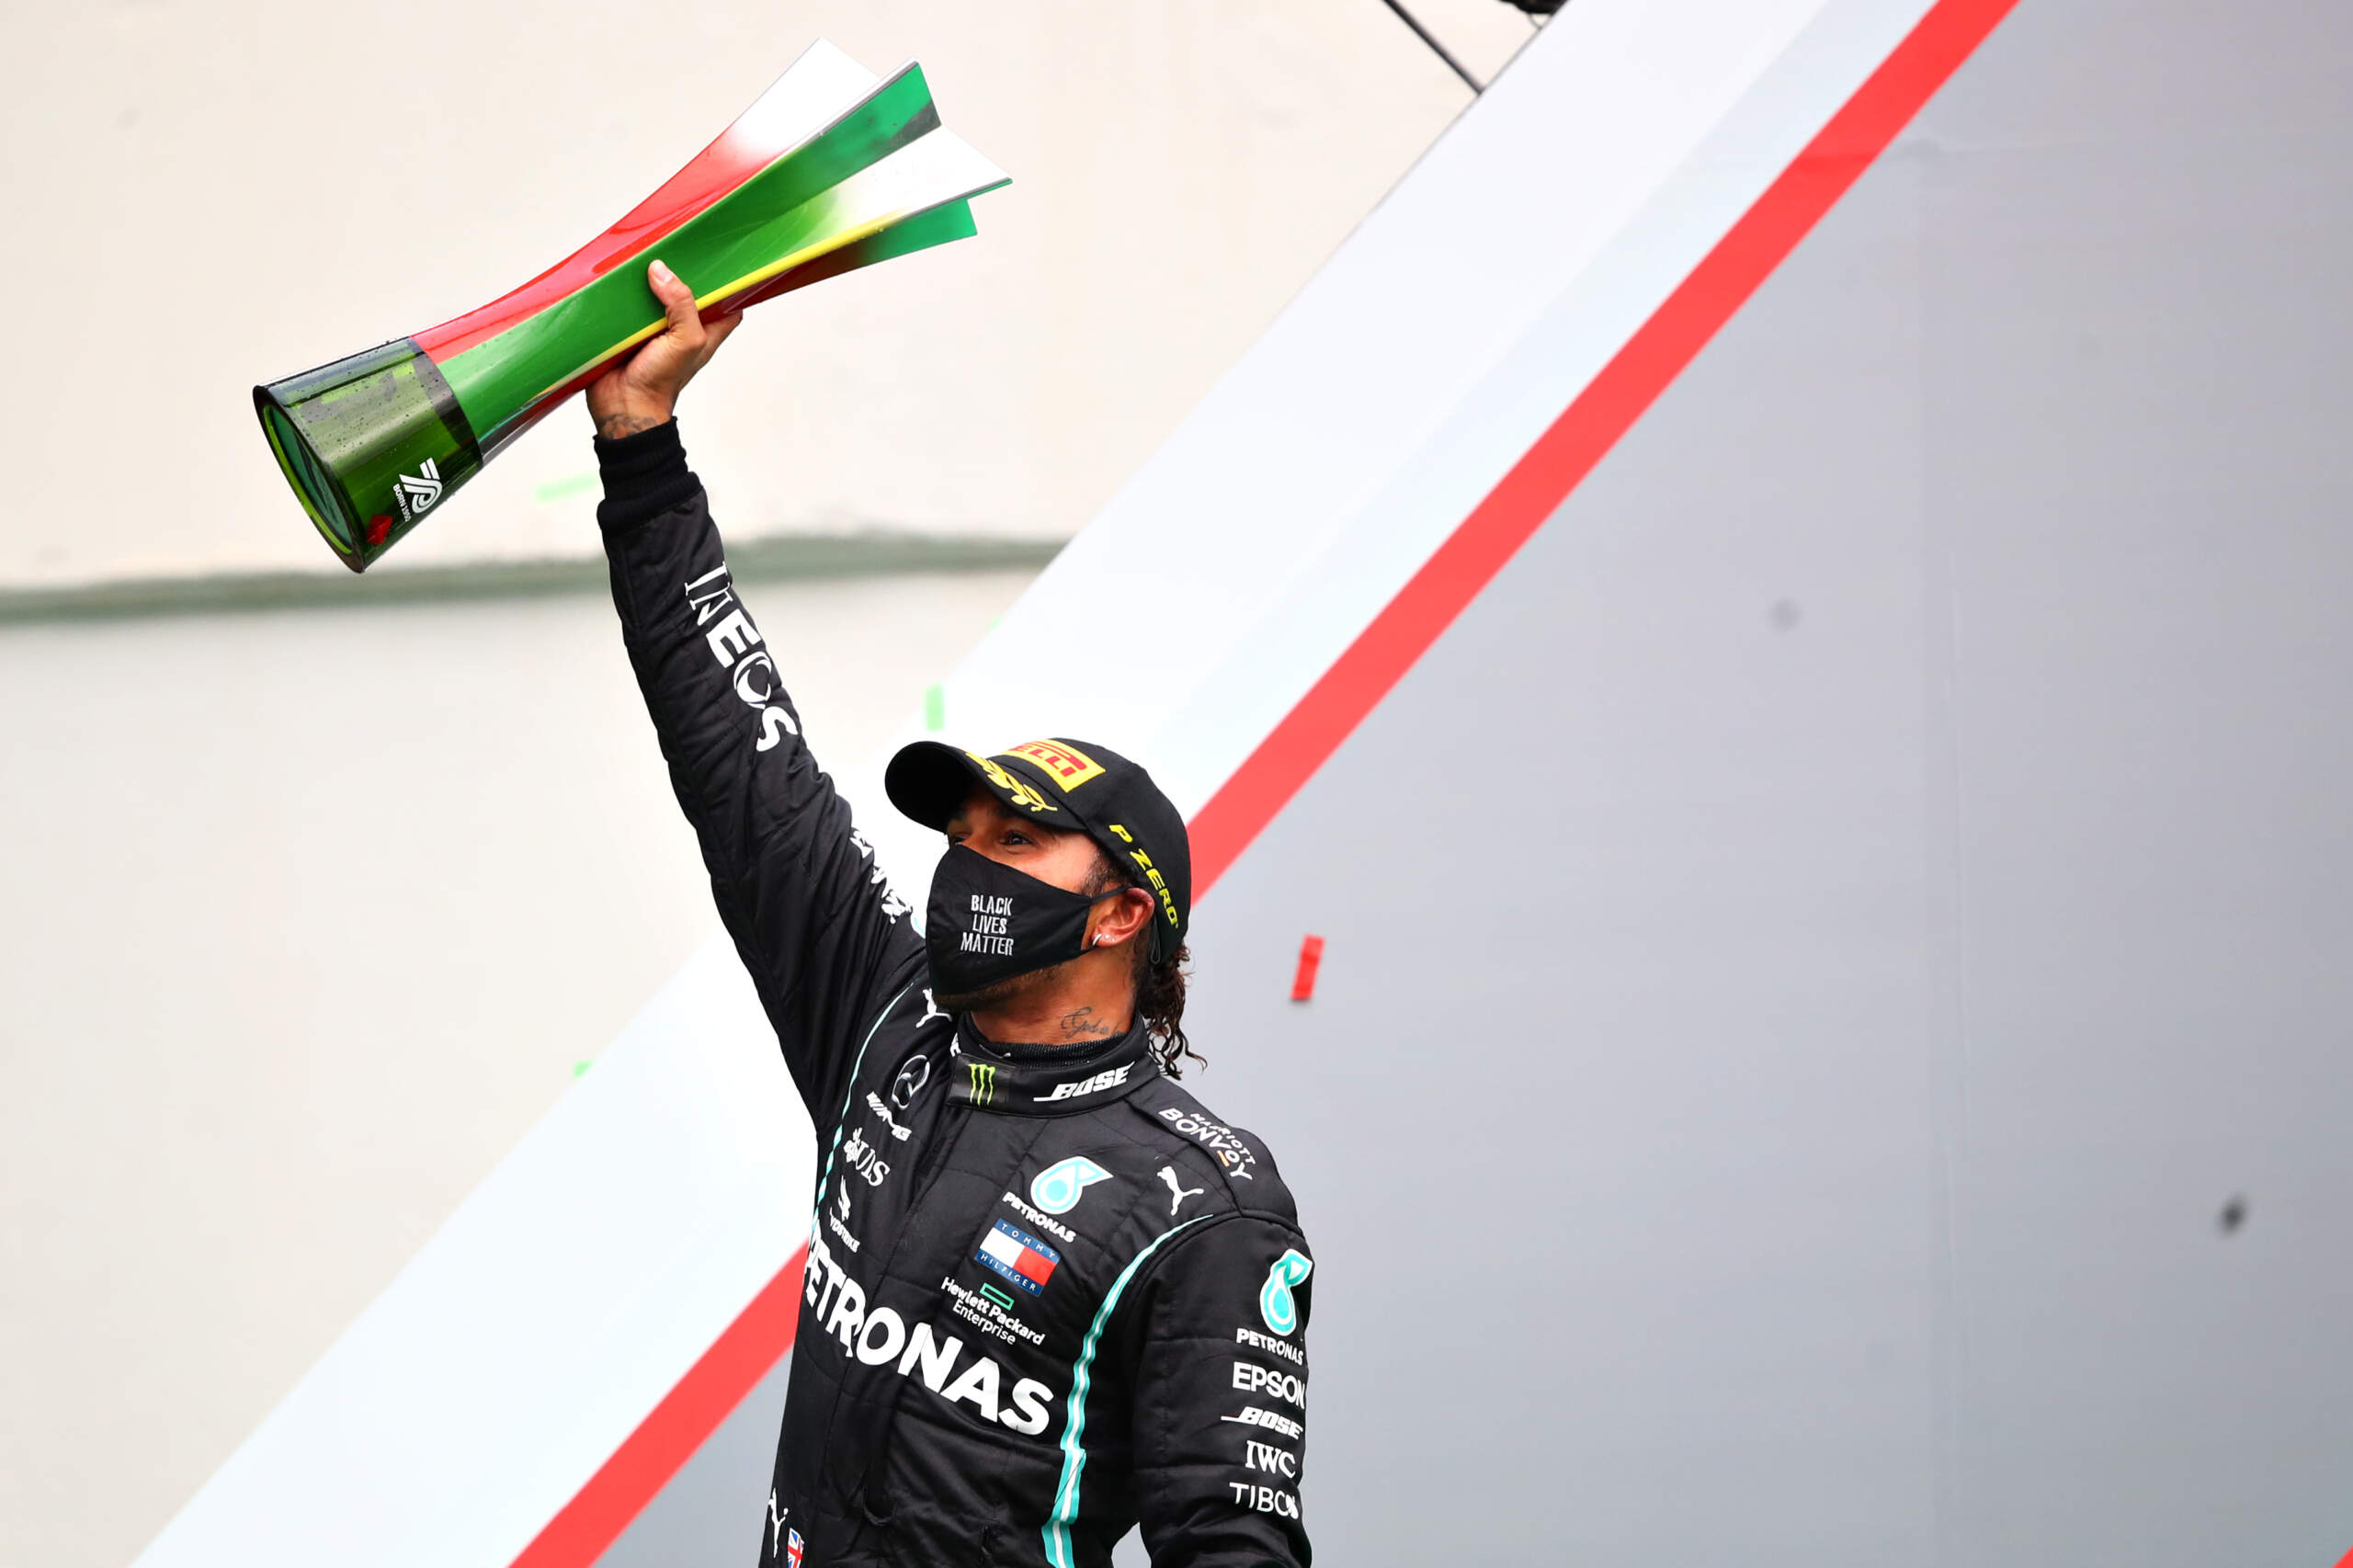 Lewis Hamilton Breaks Michael Schumacher's All-Time F1 Wins Record